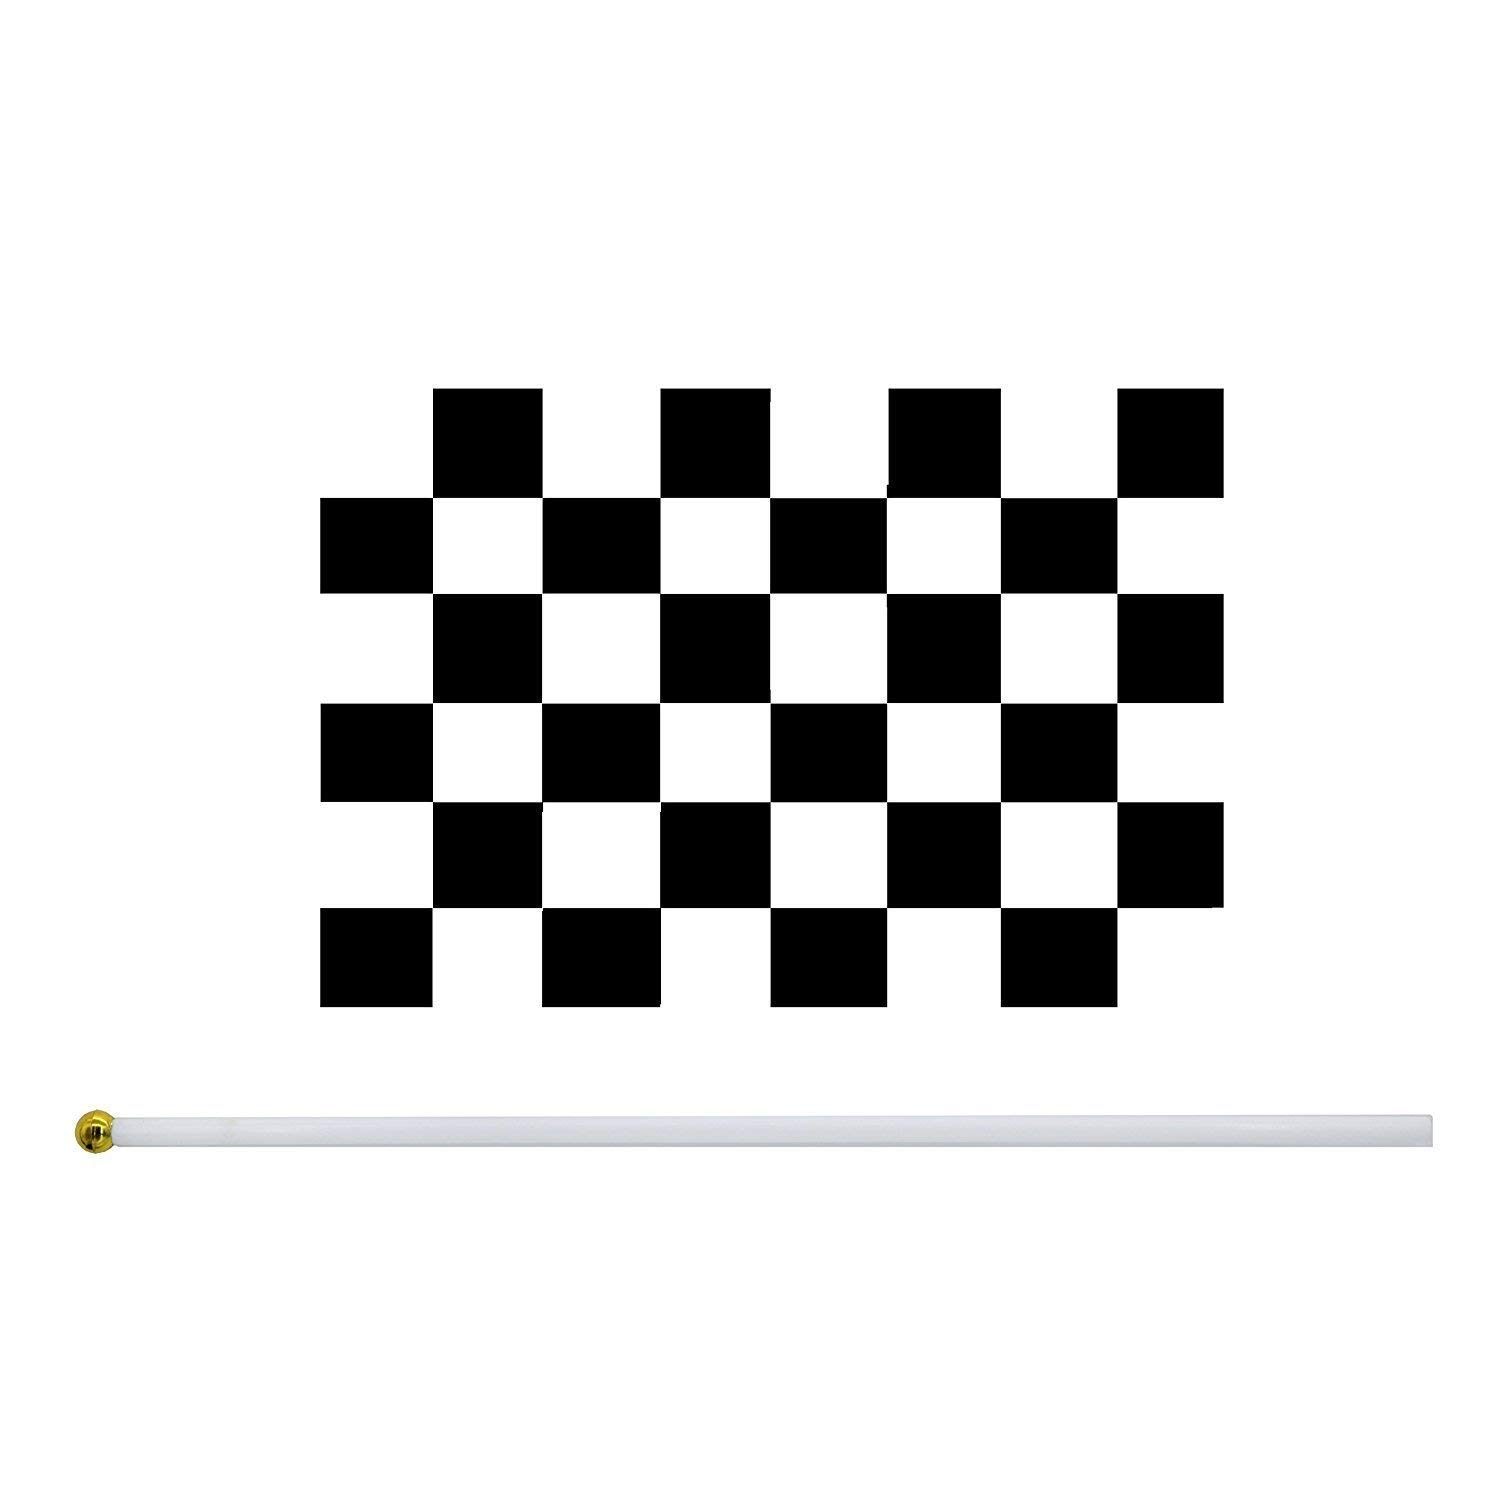 e41d3583335d0 25 Pieces Checkered Flag 8 x 5.5 Inch Racing Polyester Flags on ...